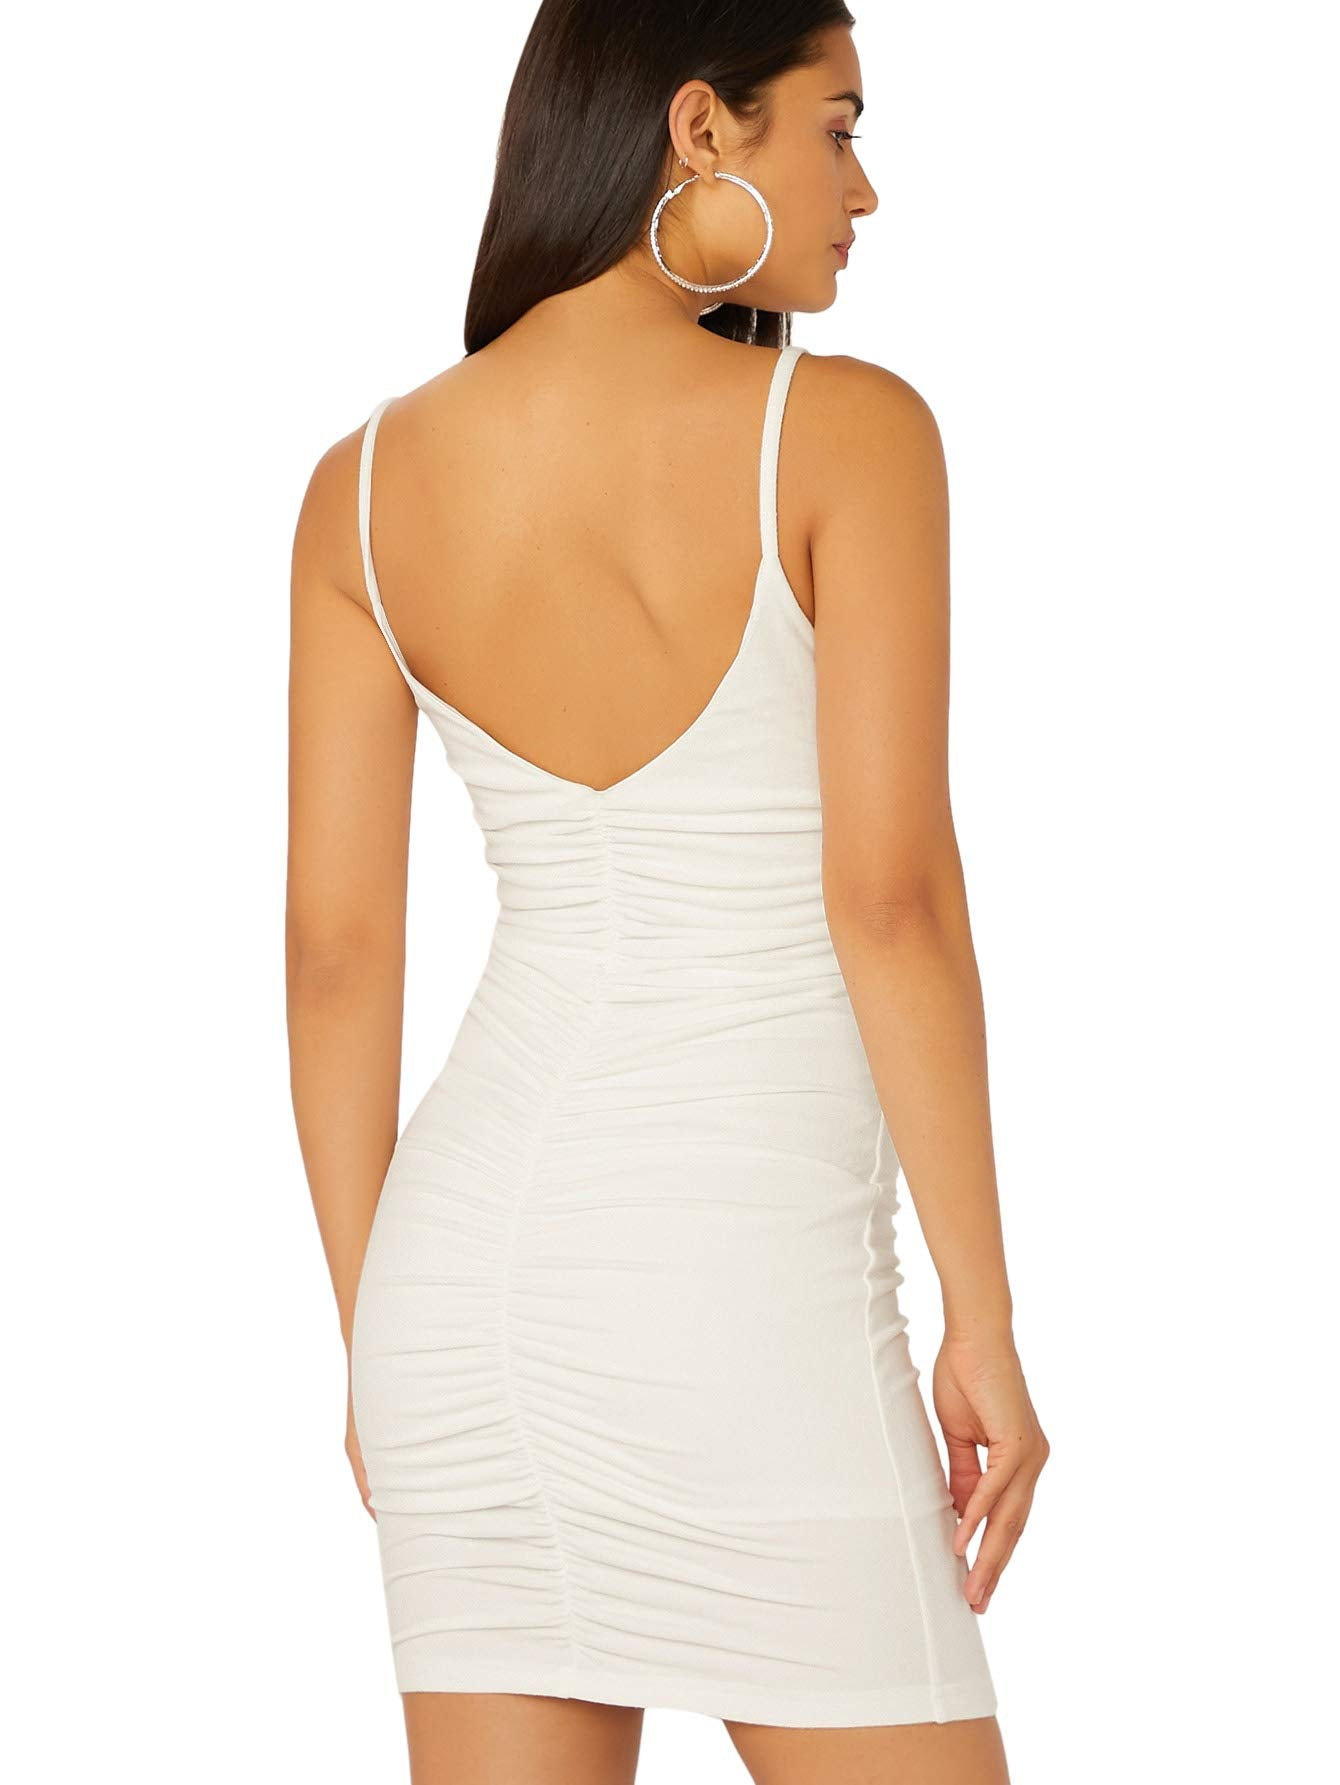 SheIn Women's V Neck Straps Sleeveless Sexy Backless Ruched Bodycon Mini Dress Small White - wiihuu